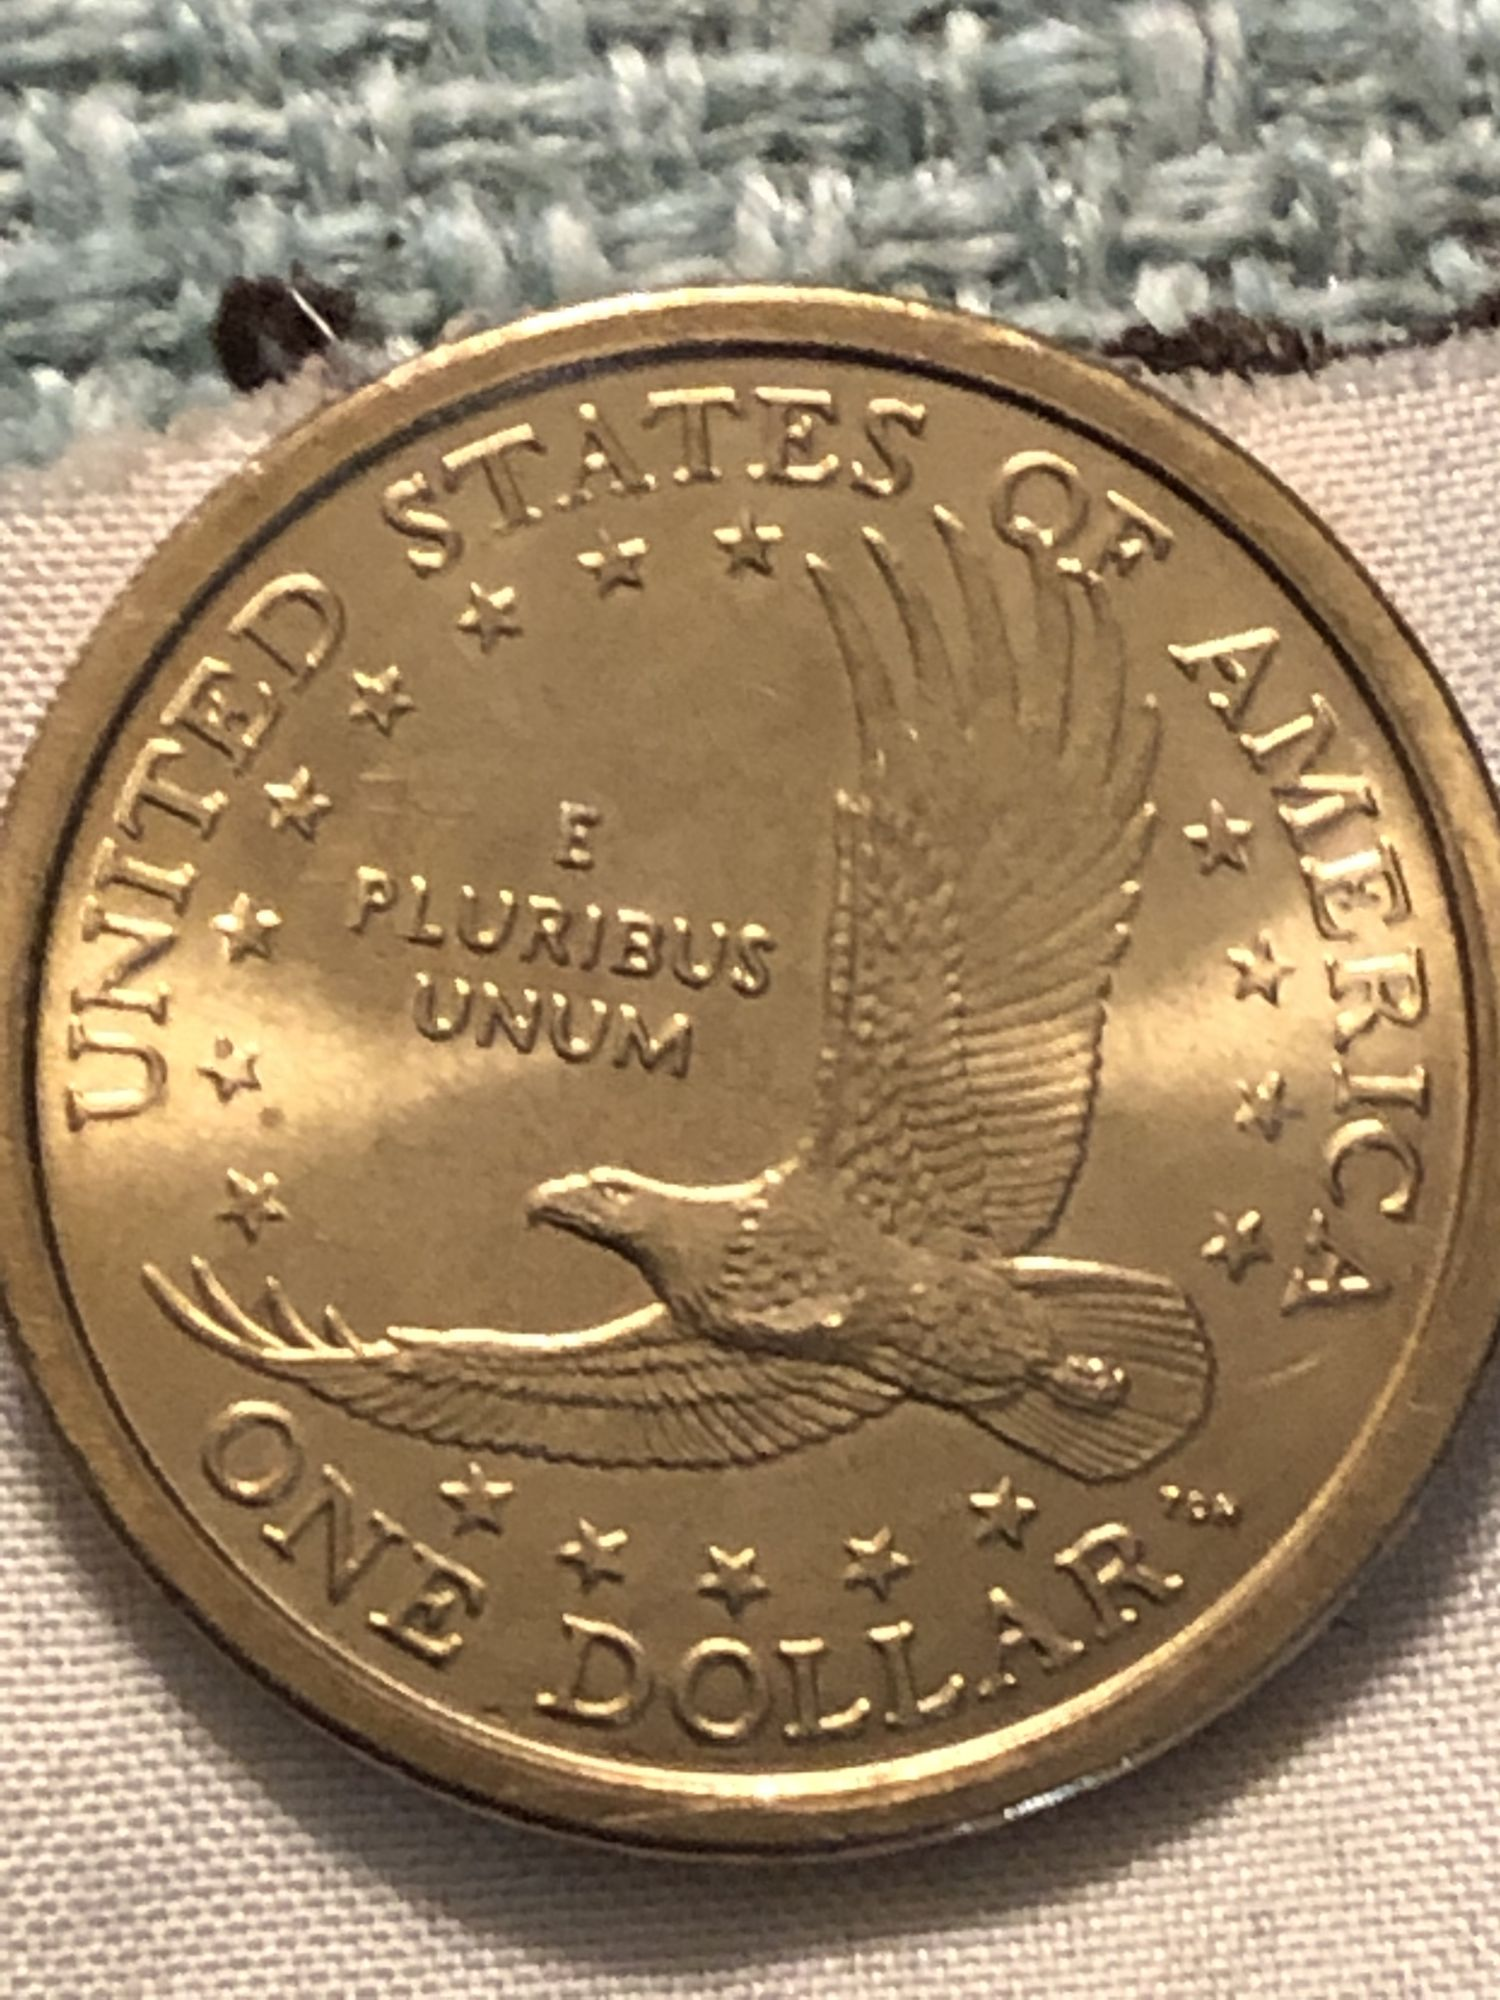 2000 p Sacagawea wounded eagle? - Newbie Coin Collecting